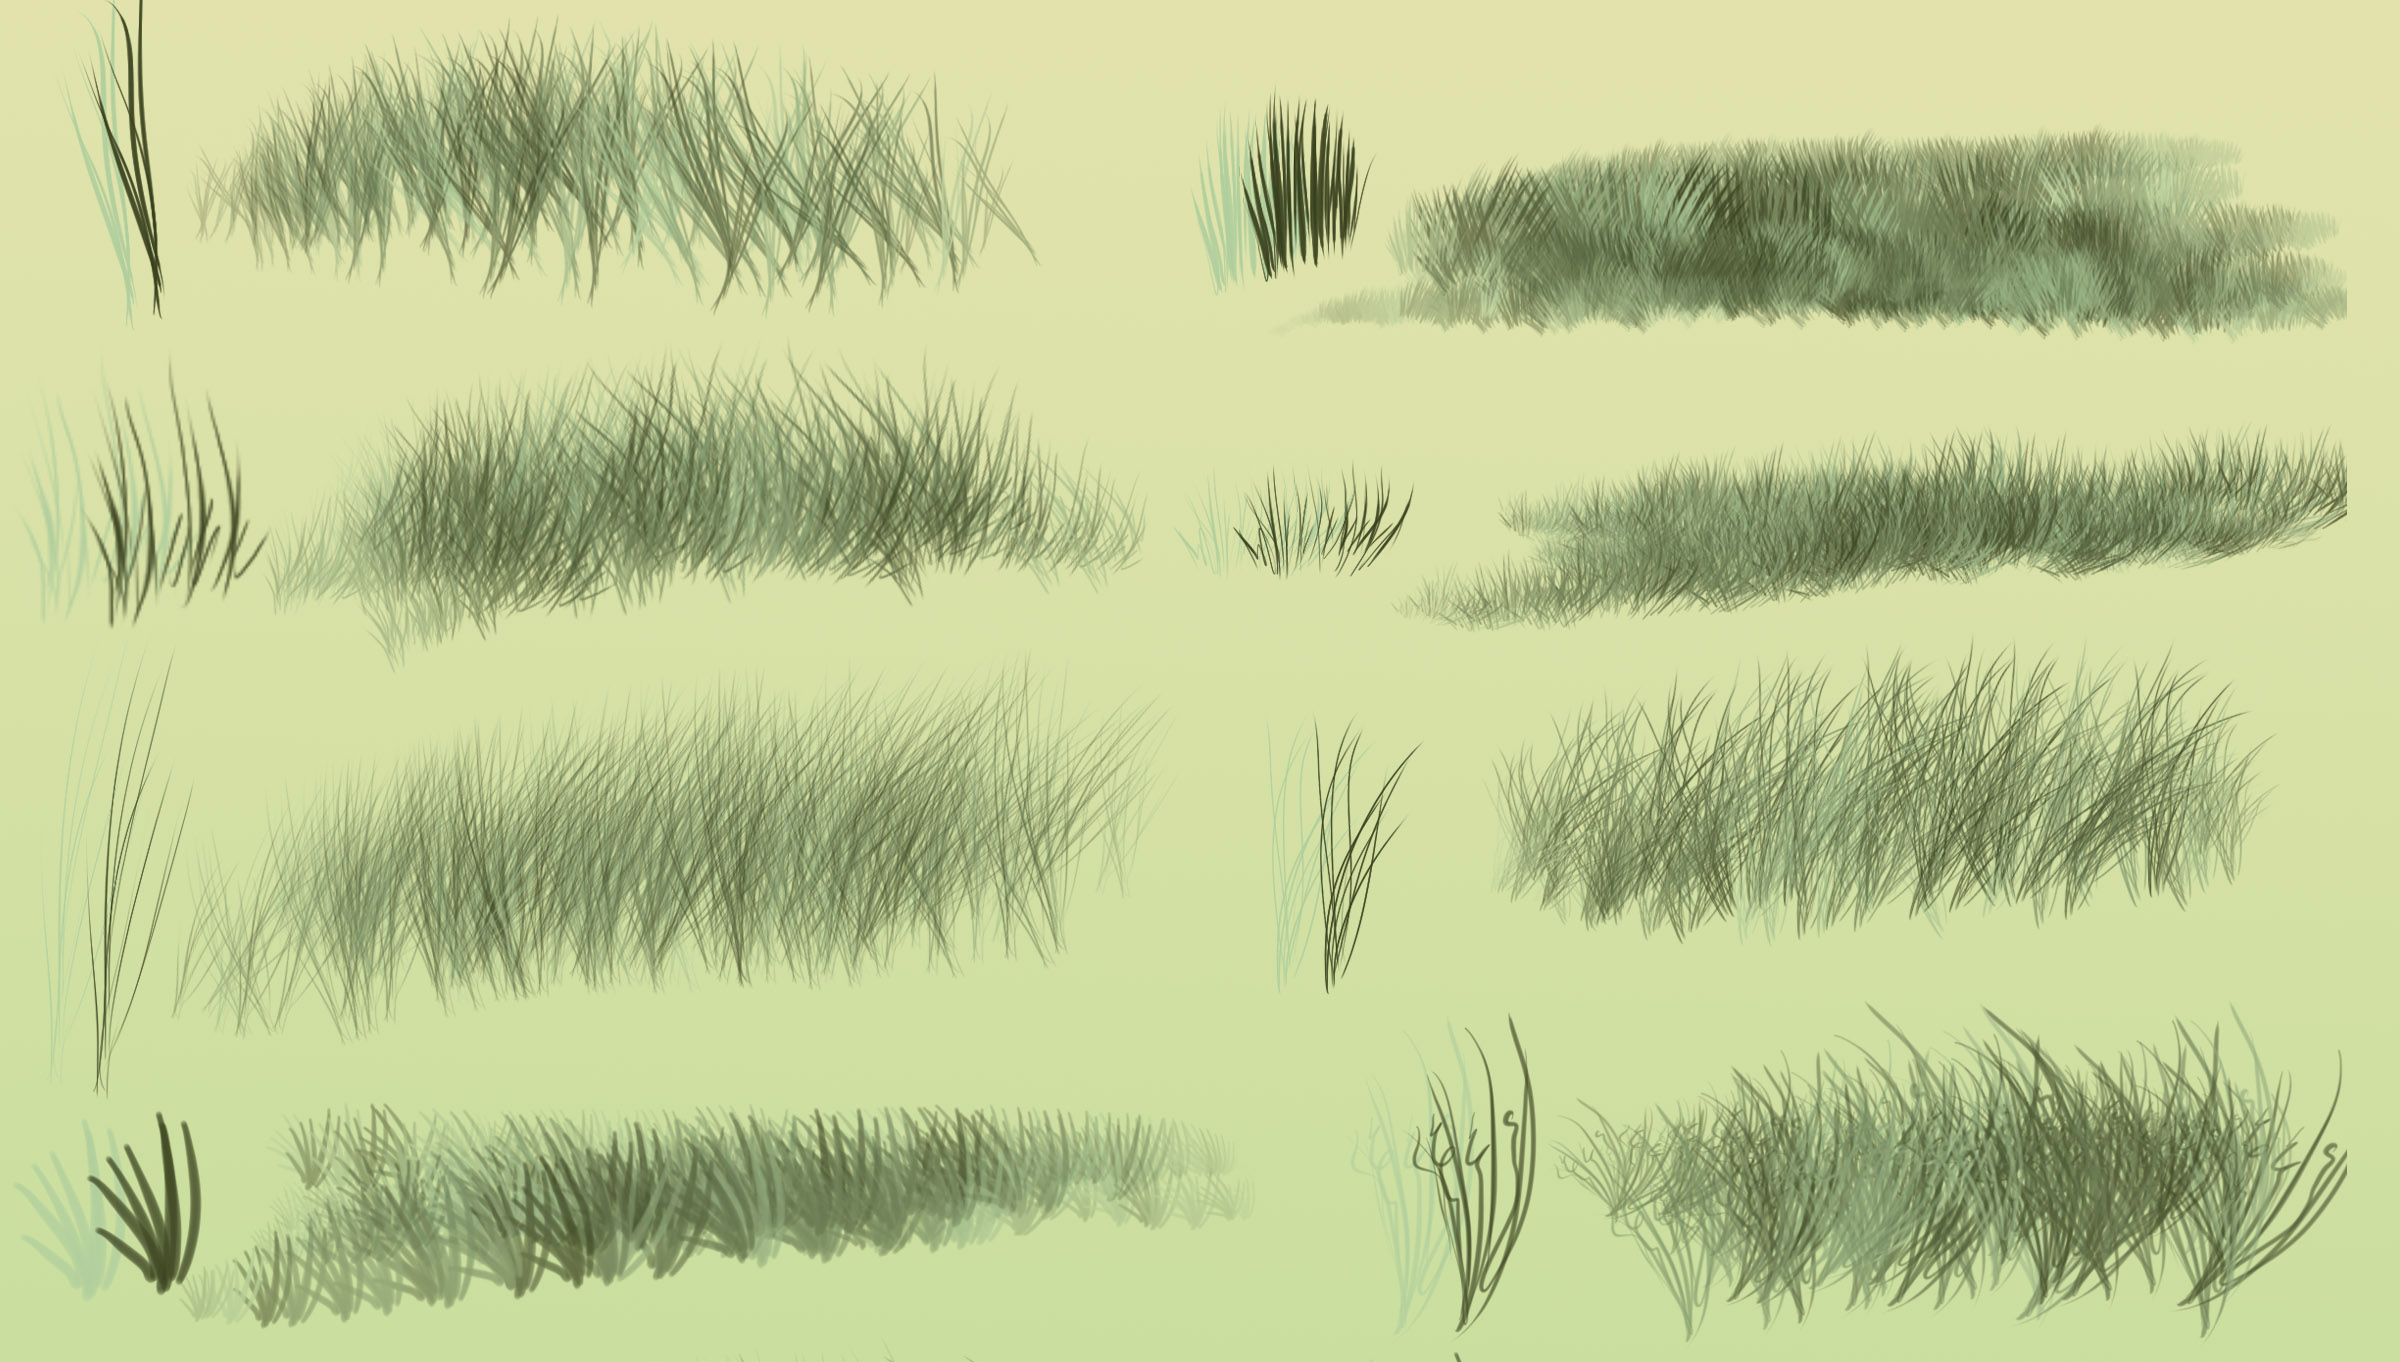 Photoshop brushes: Grass or fur